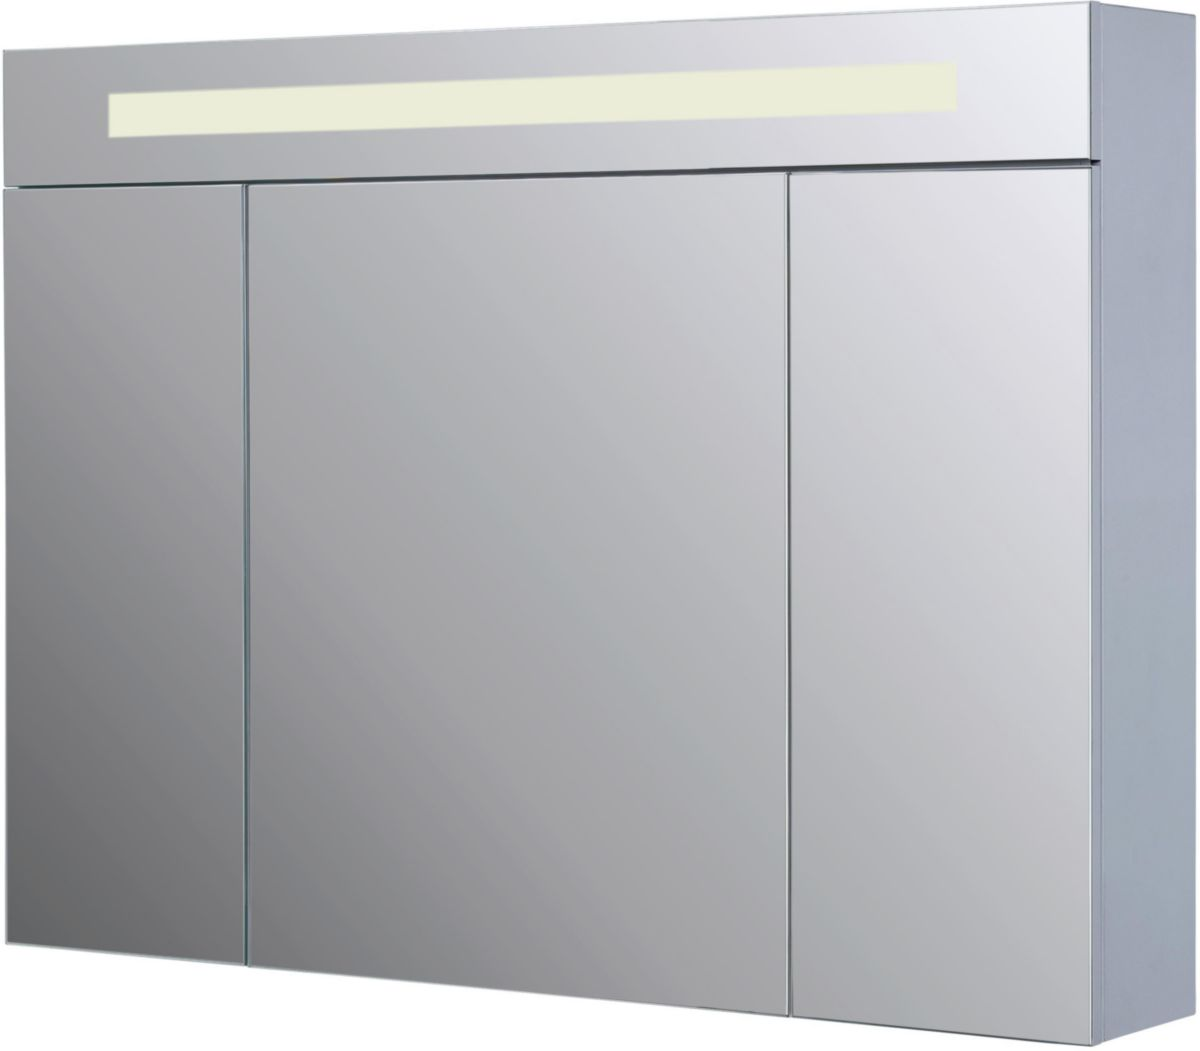 Alterna Armoire De Toilette Seducta 90 Cm Avec Eclairage Led Cedeo